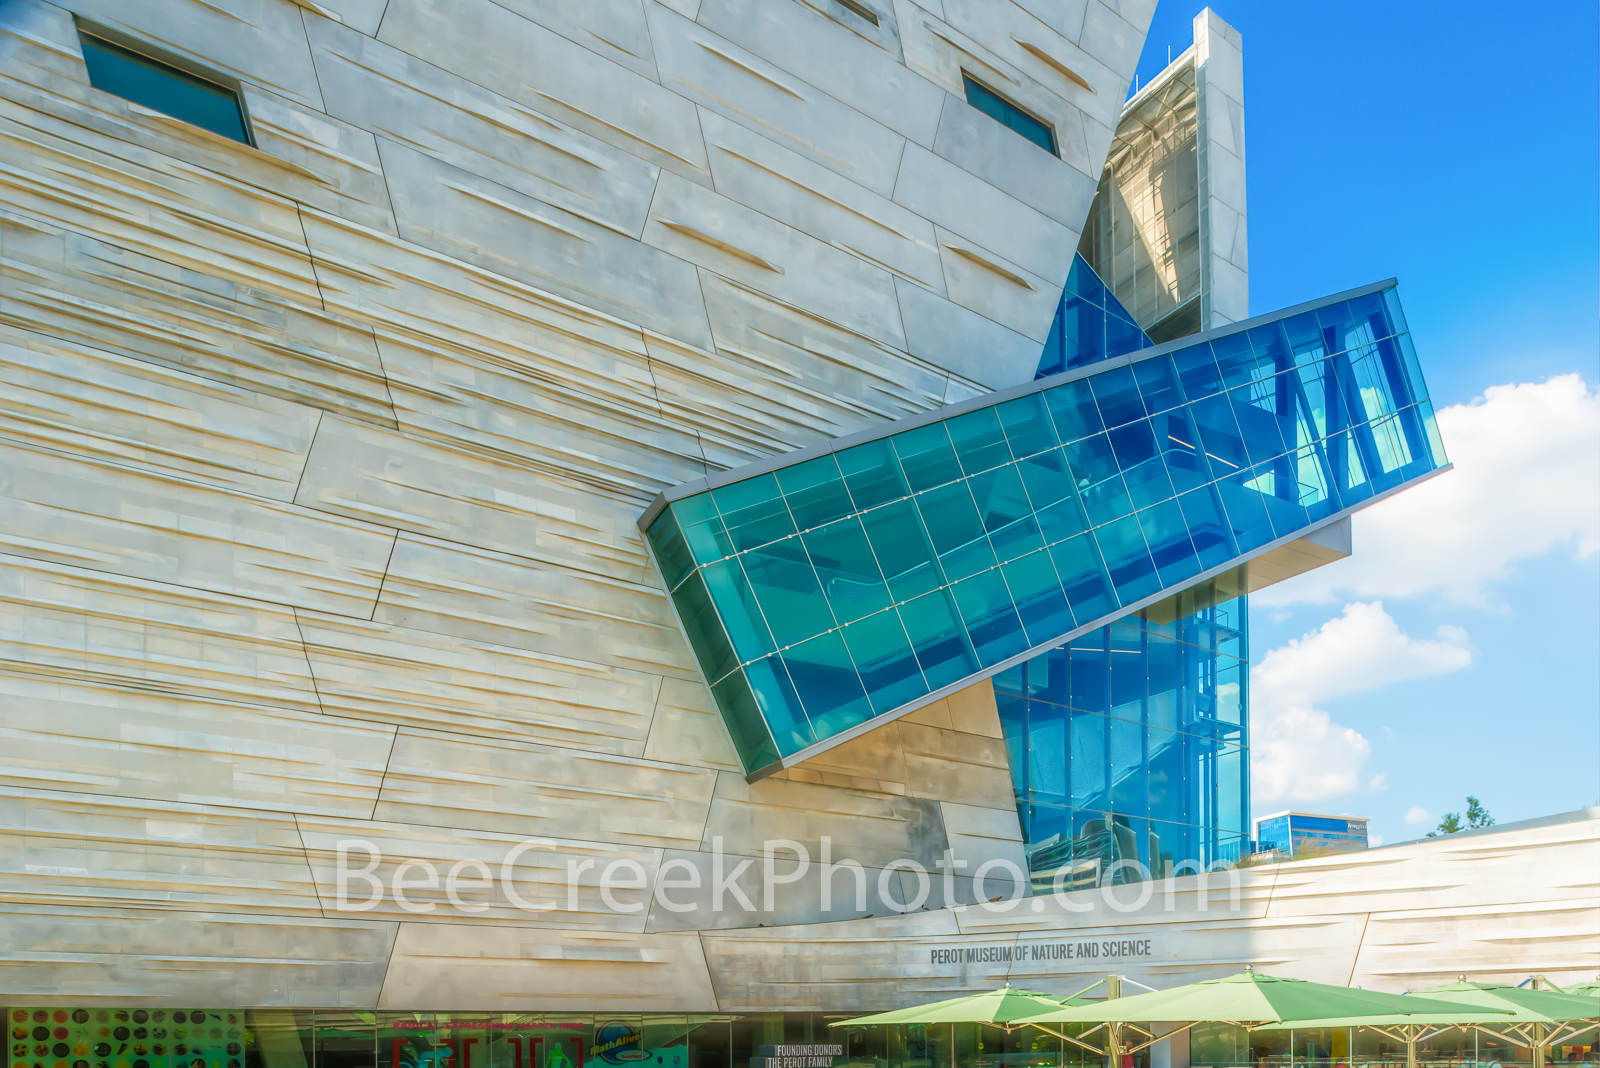 Dallas, downtown dallas, architecture, Perot Museum of Nature and Science, museum, Ross Perot, museum, downtown dallas, landmark, urban, landscape, iconic, pictures of dallas, city of dallas, DFW, hor, photo